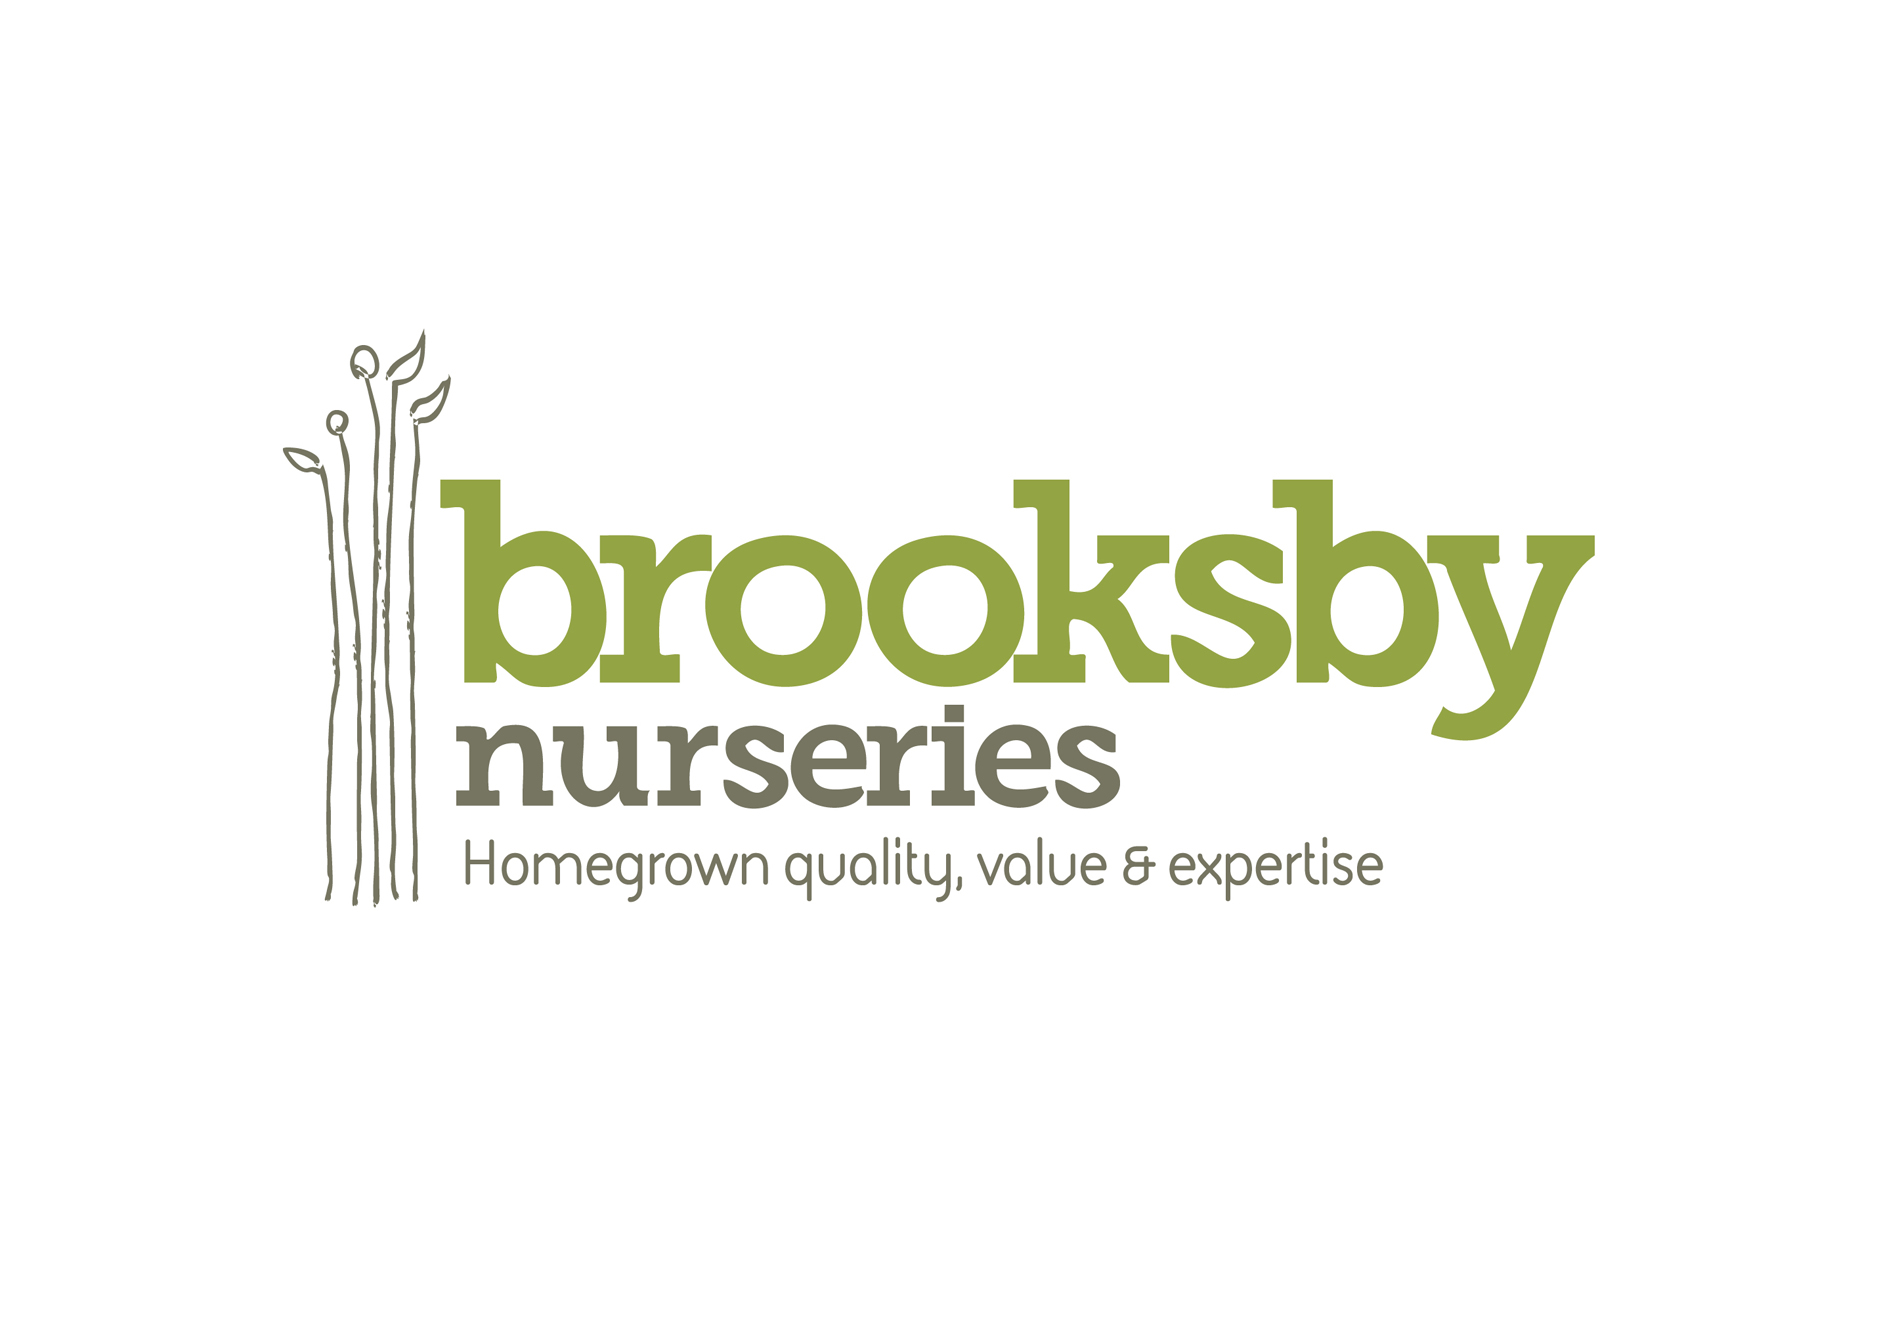 Brooksby Nurseries Branding and Logo Design